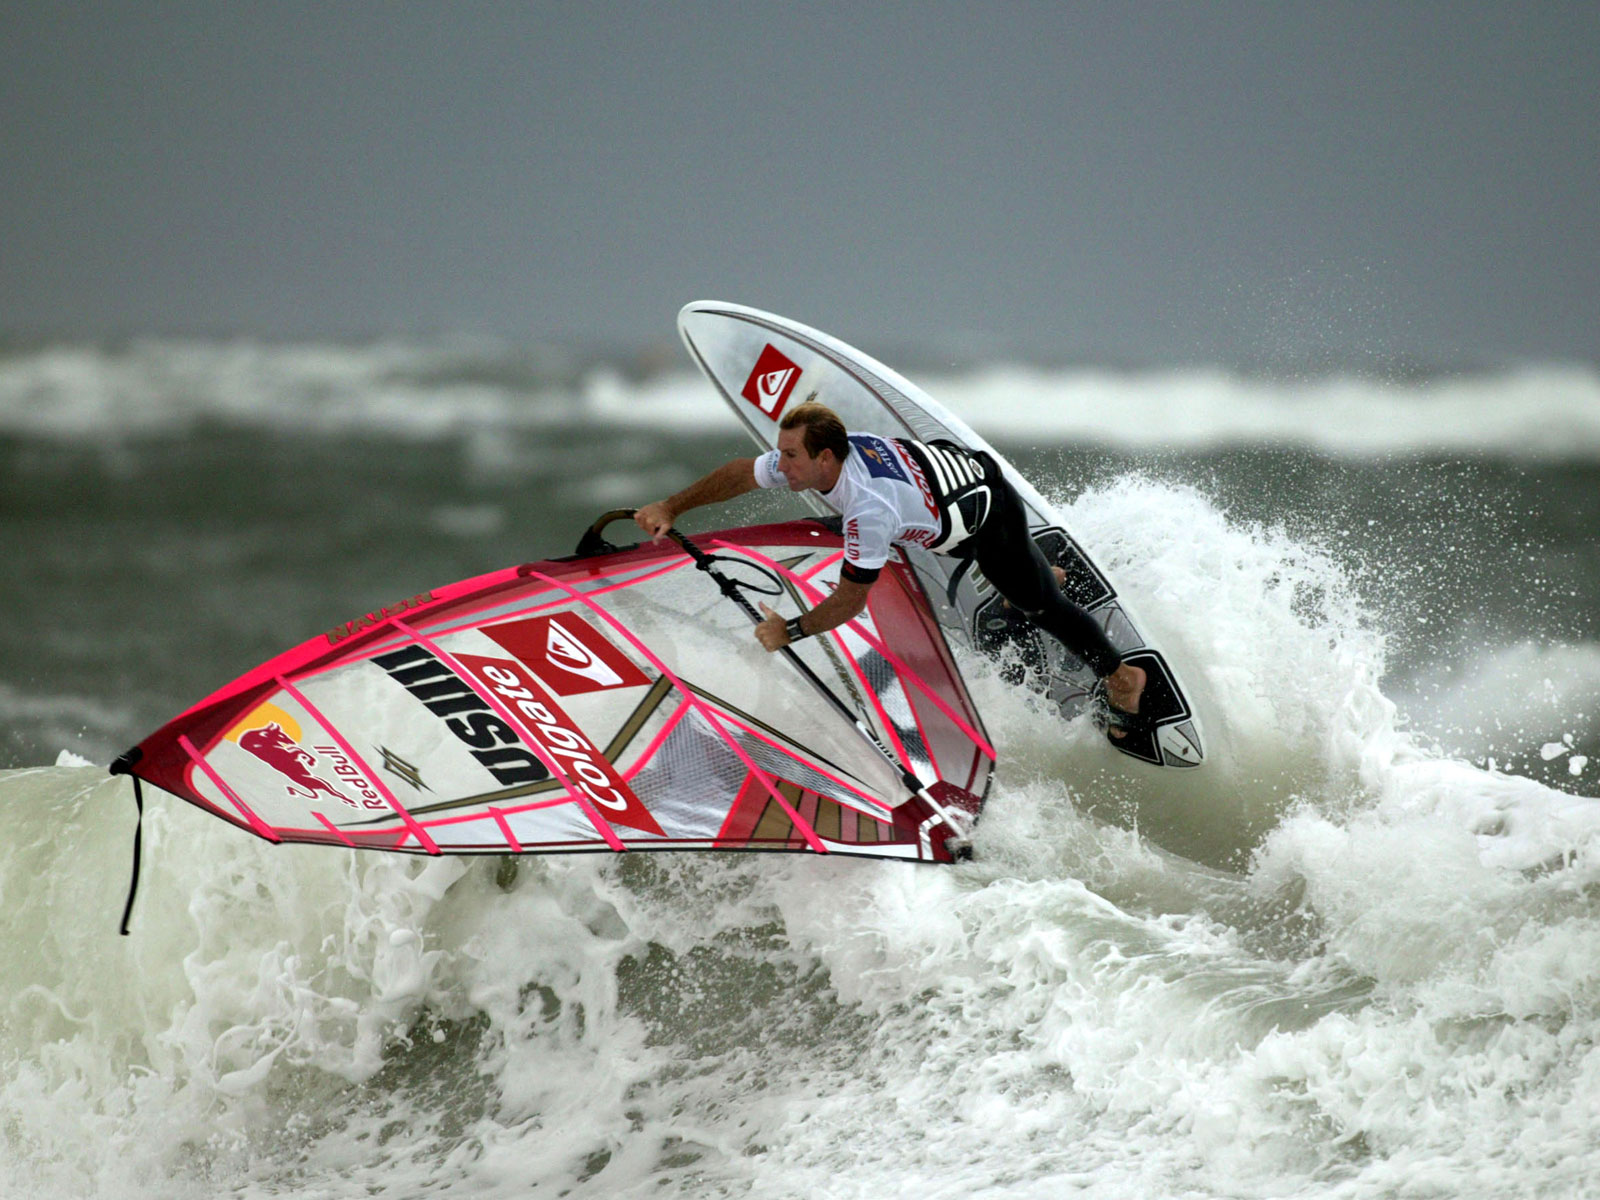 Live Windsurf Wallpapers | Windsurf Wallpapers Collection